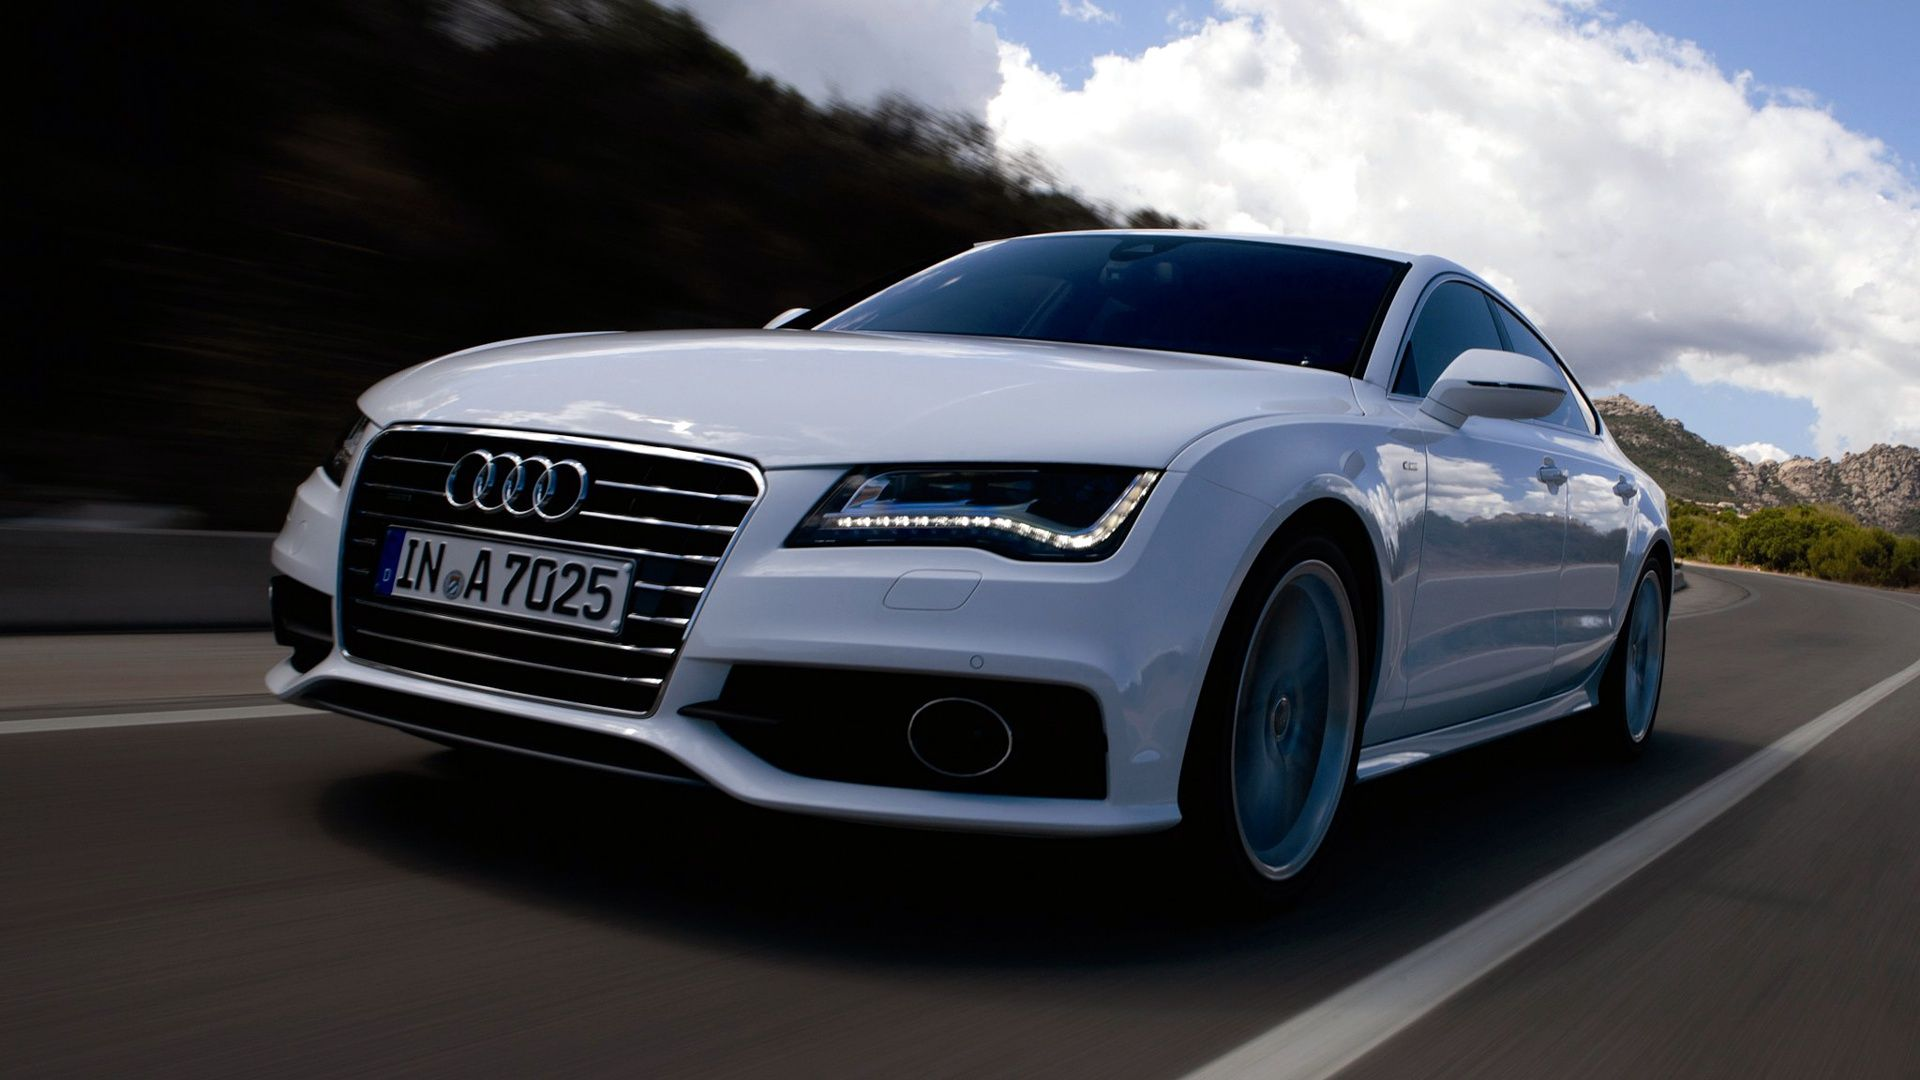 pin by christian vargas on me pinterest audi audi a7 and audi rh pinterest co uk 2012 audi a7 owners manual pdf 2012 audi a4 owners manual